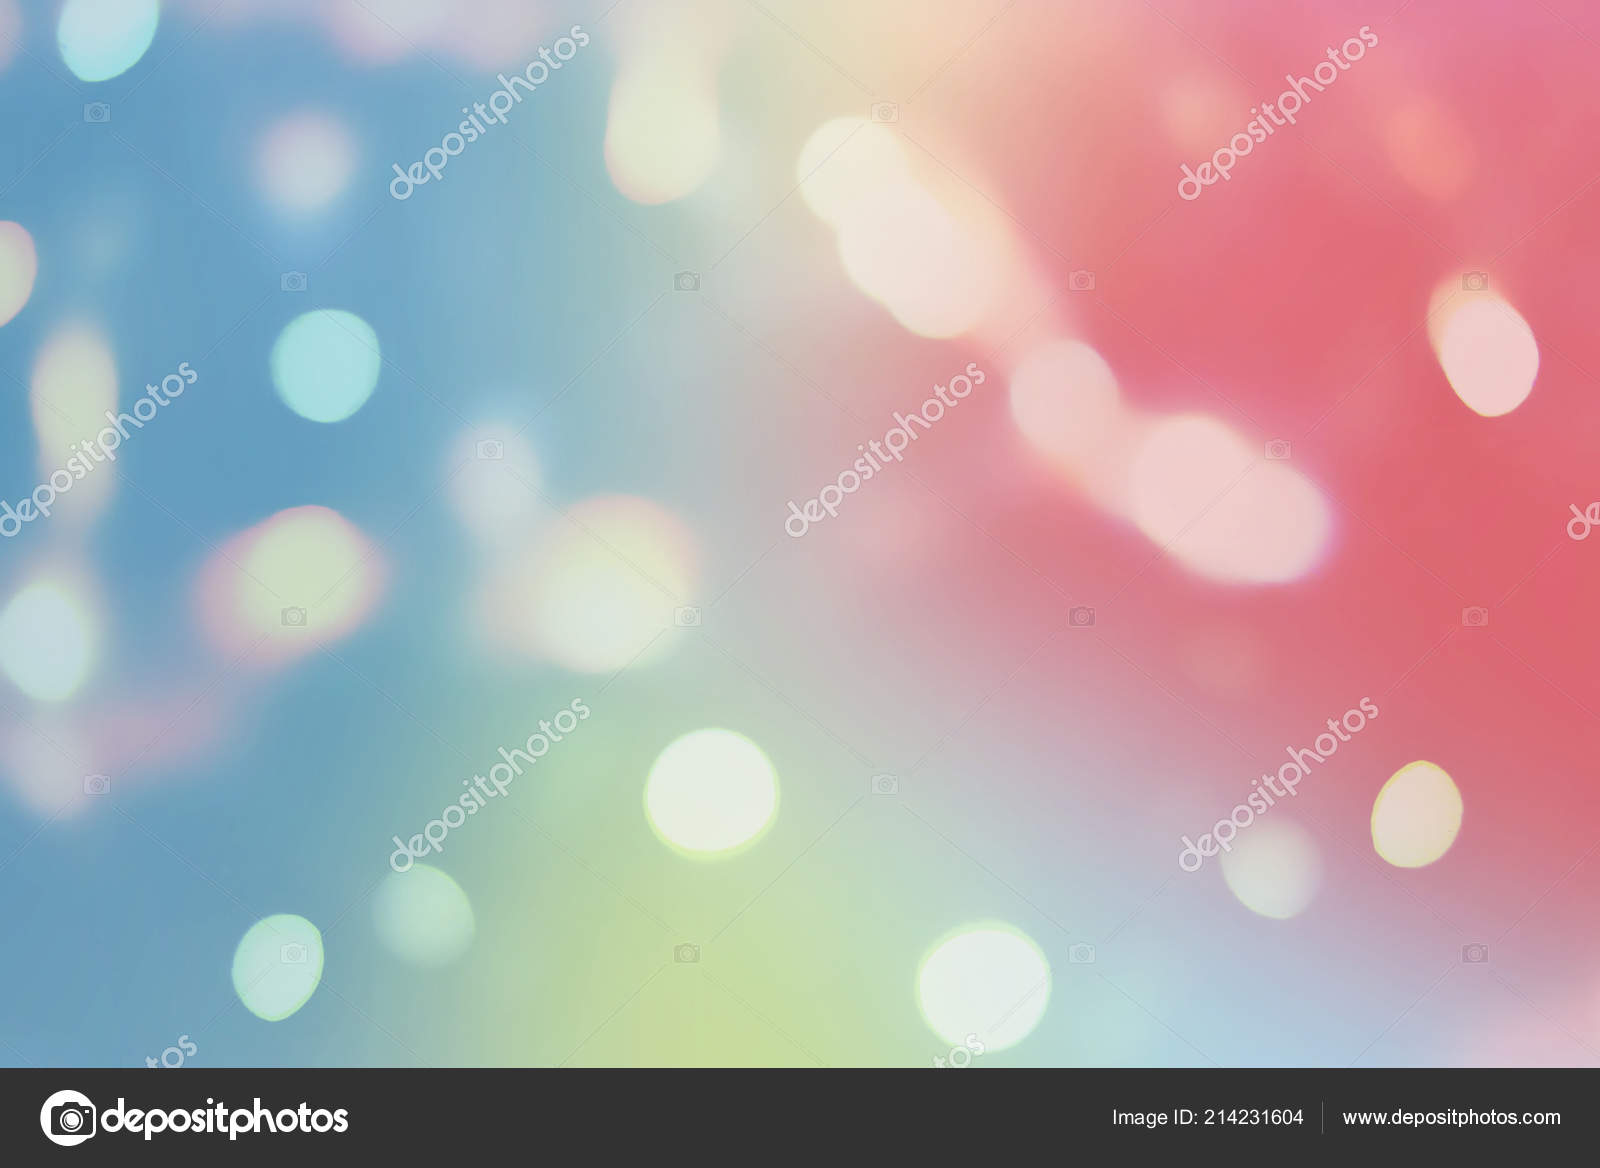 smooth abstract gradient background blue yellow red white colors digital stock photo c evrojey 214231604 https depositphotos com 214231604 stock photo smooth abstract gradient background blue html